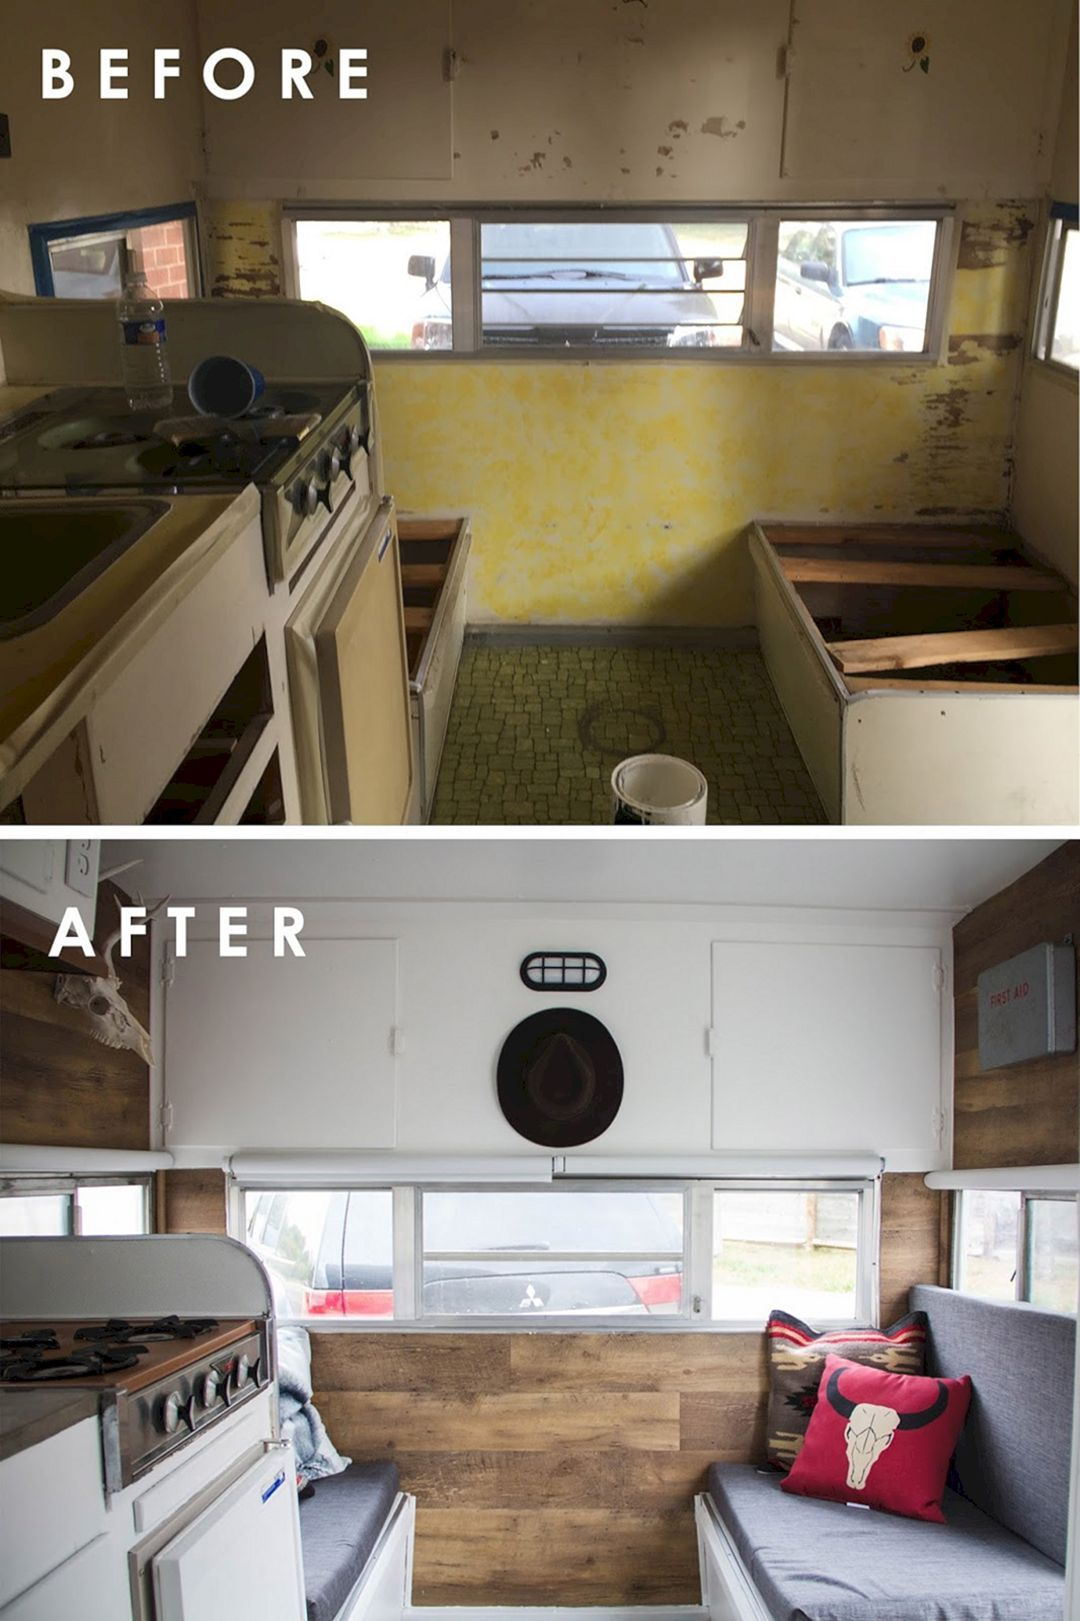 Outstanding 42+ Amazing RV Camper Makeover Ideas Before